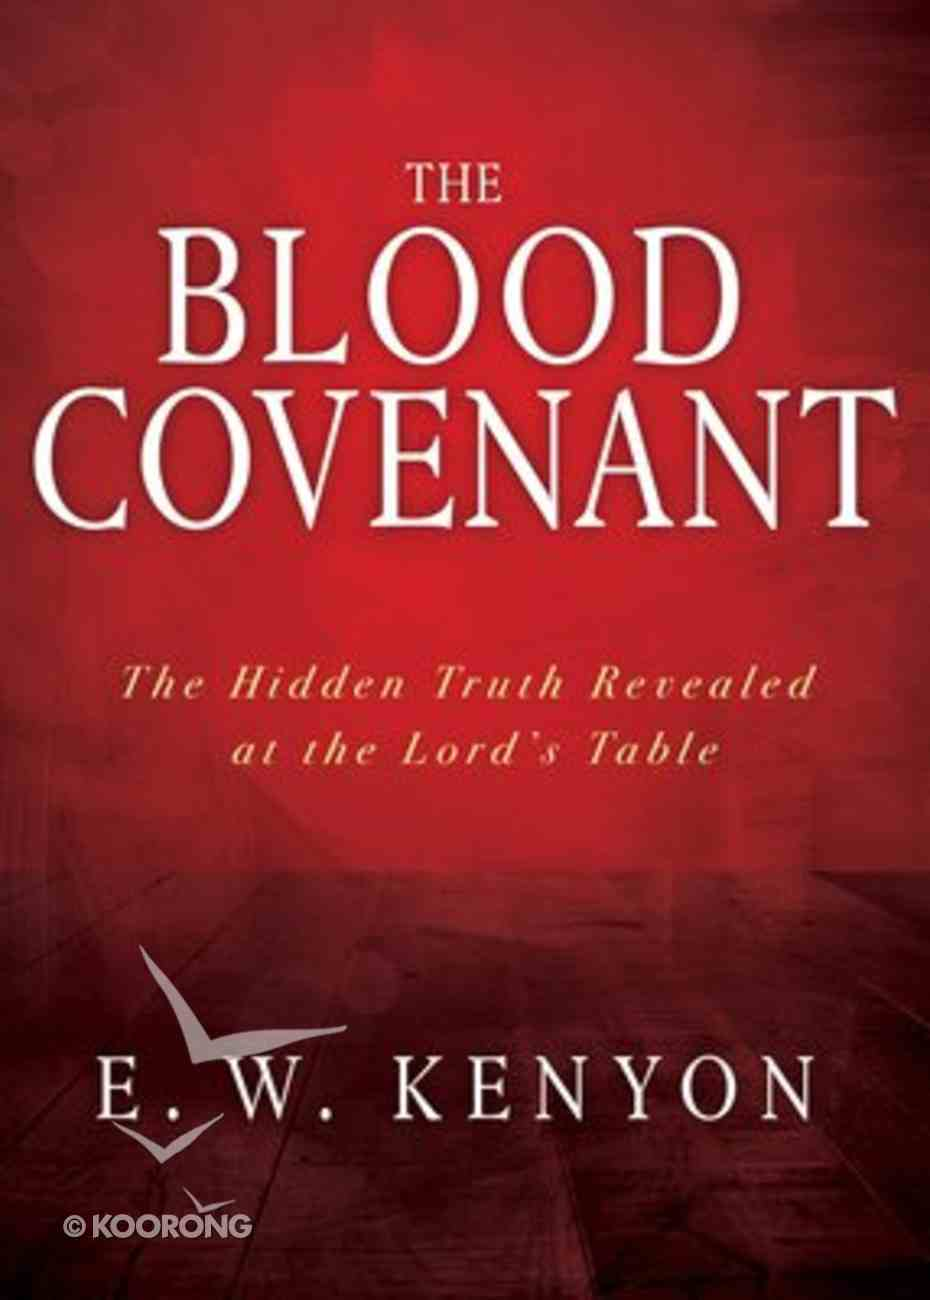 The Blood Covenant: The Hidden Truth Revealed At the Lord's Table Paperback